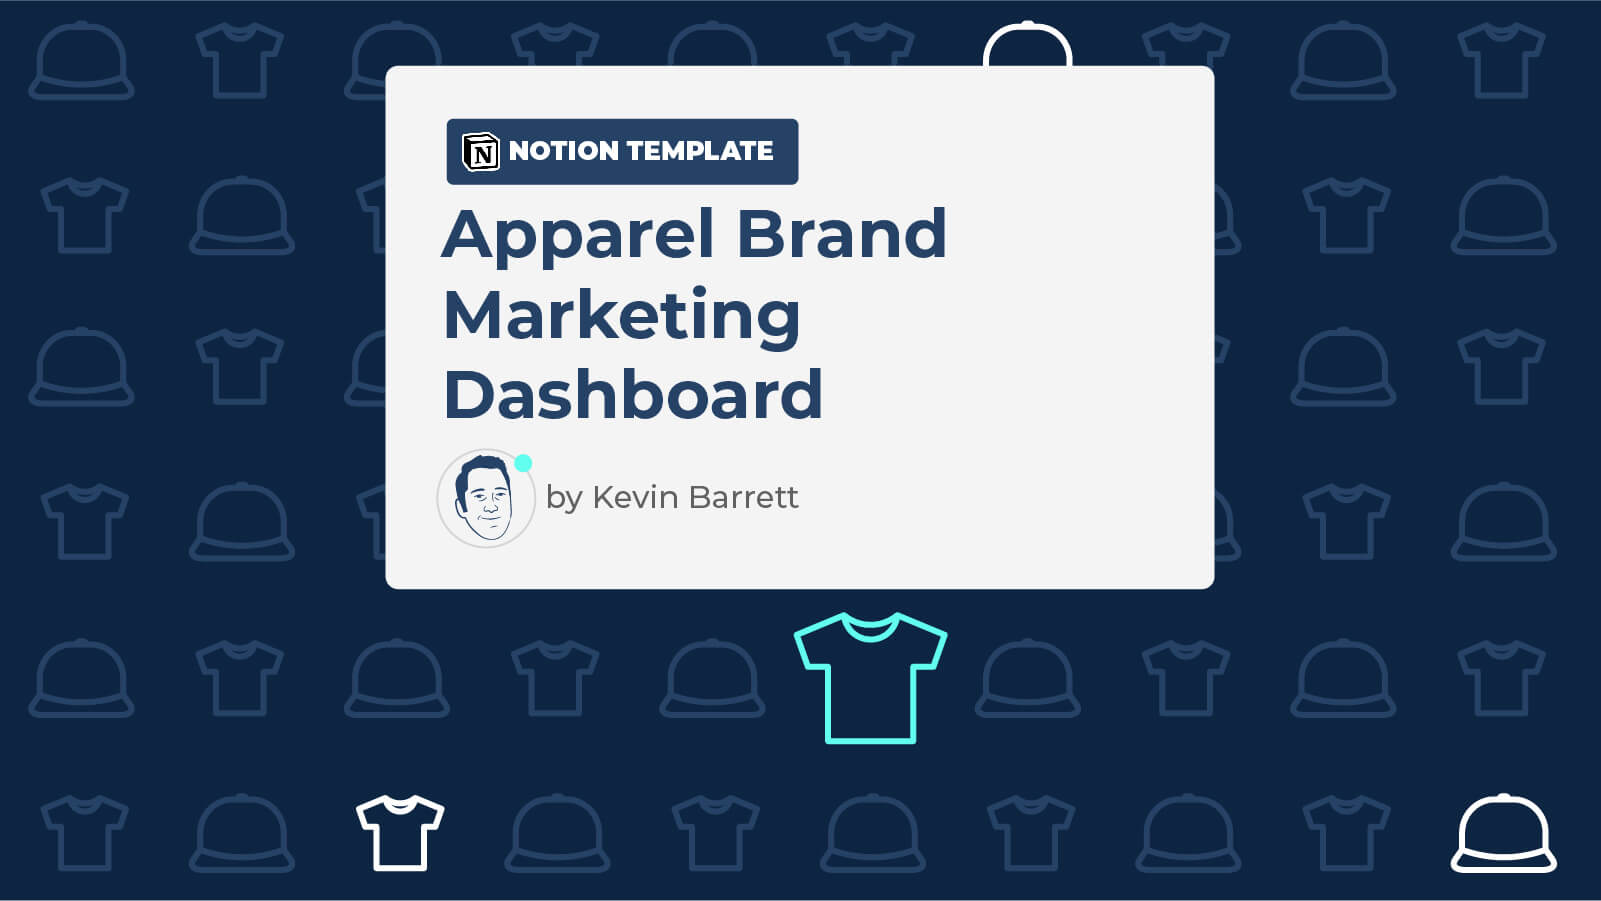 Apparel Brand Marketing Dashboard